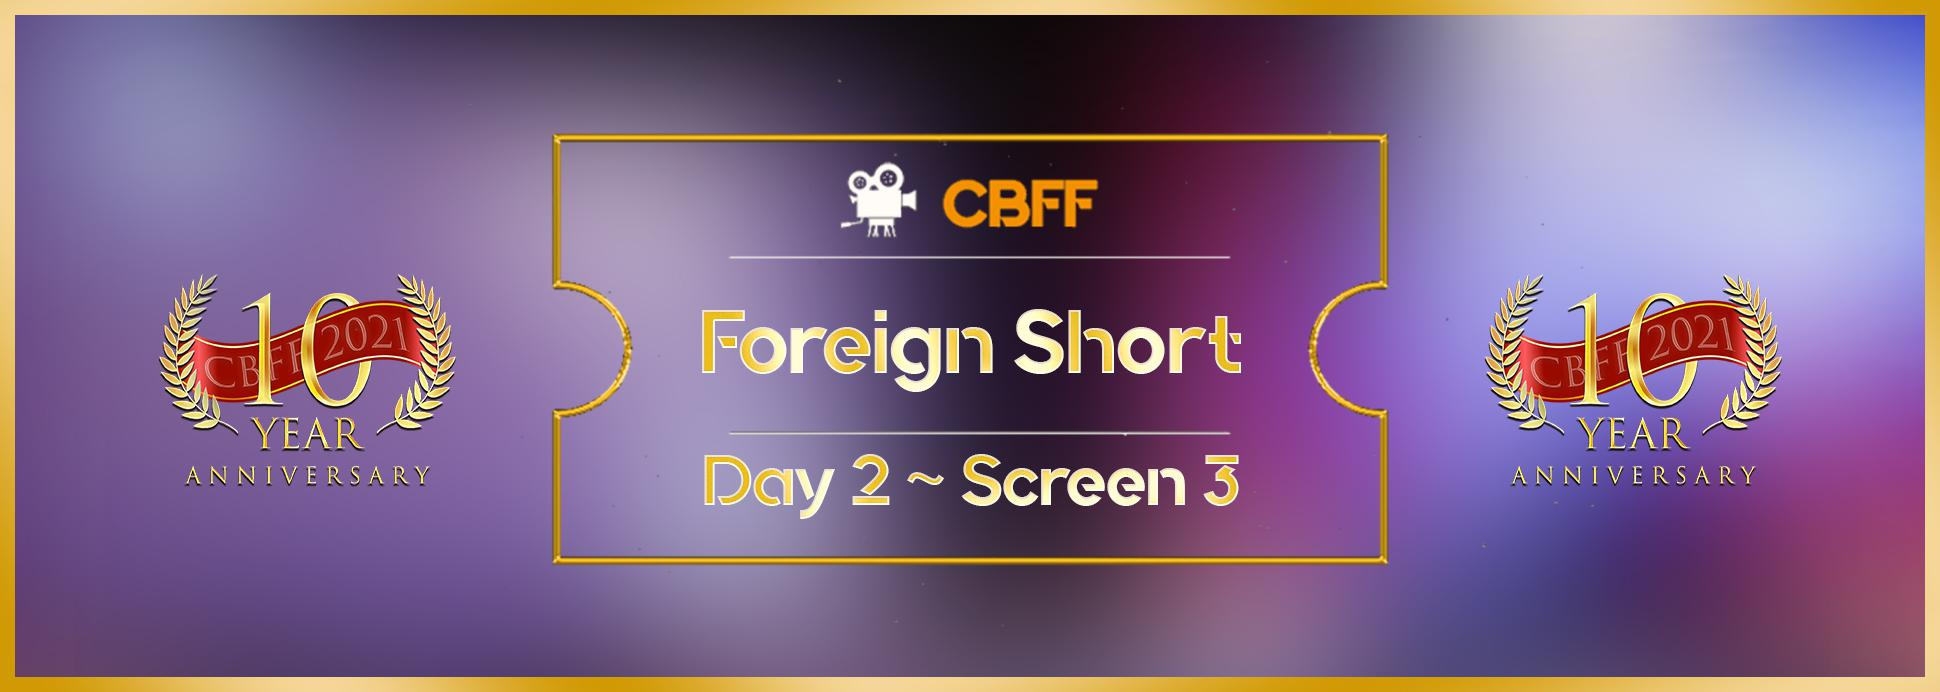 Day 2, Screen 3: Foreign Short